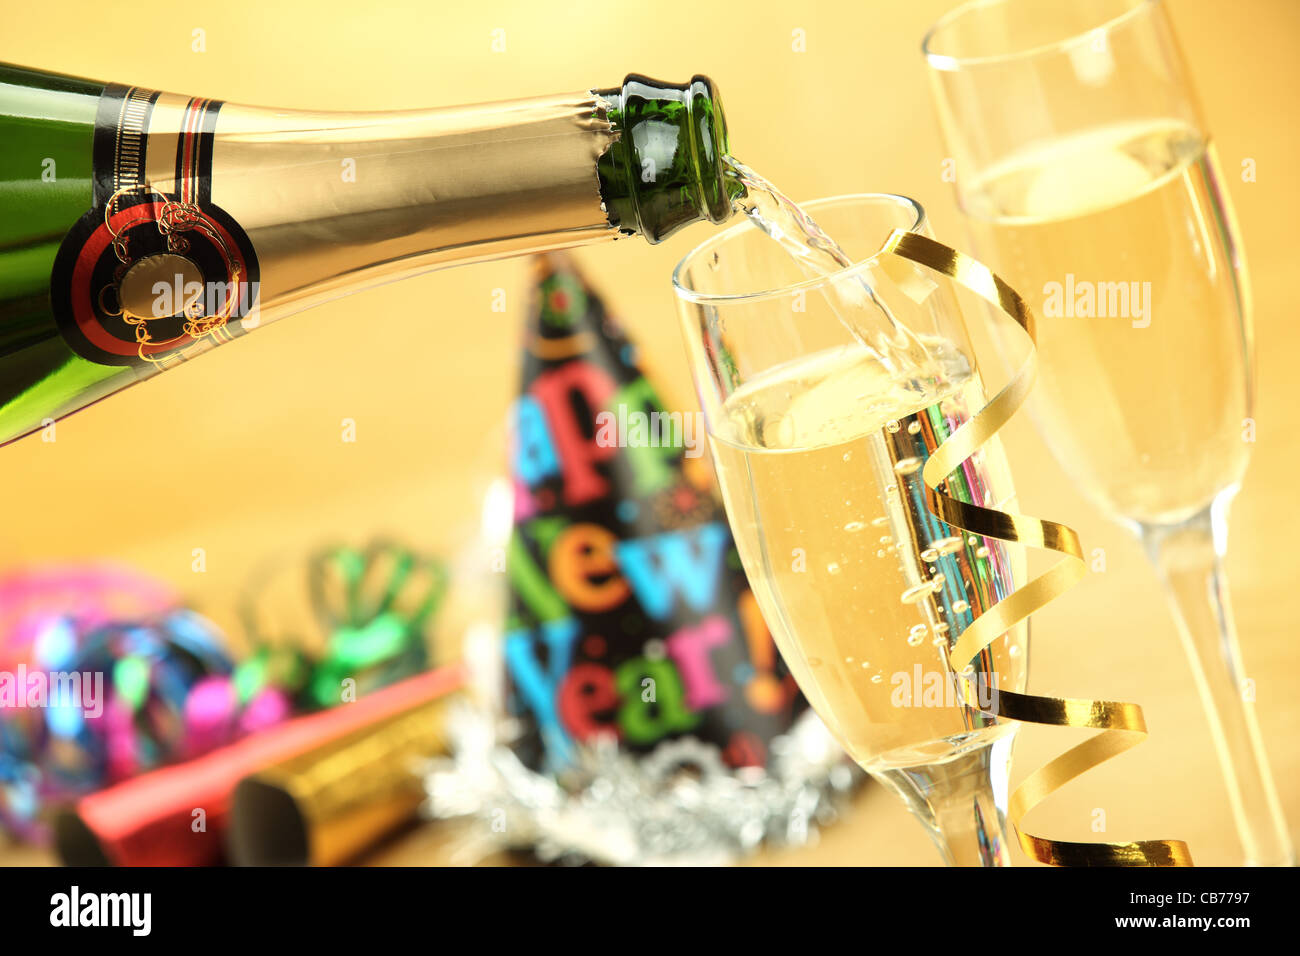 Champagne for New Year's Eve Celebration - Stock Image